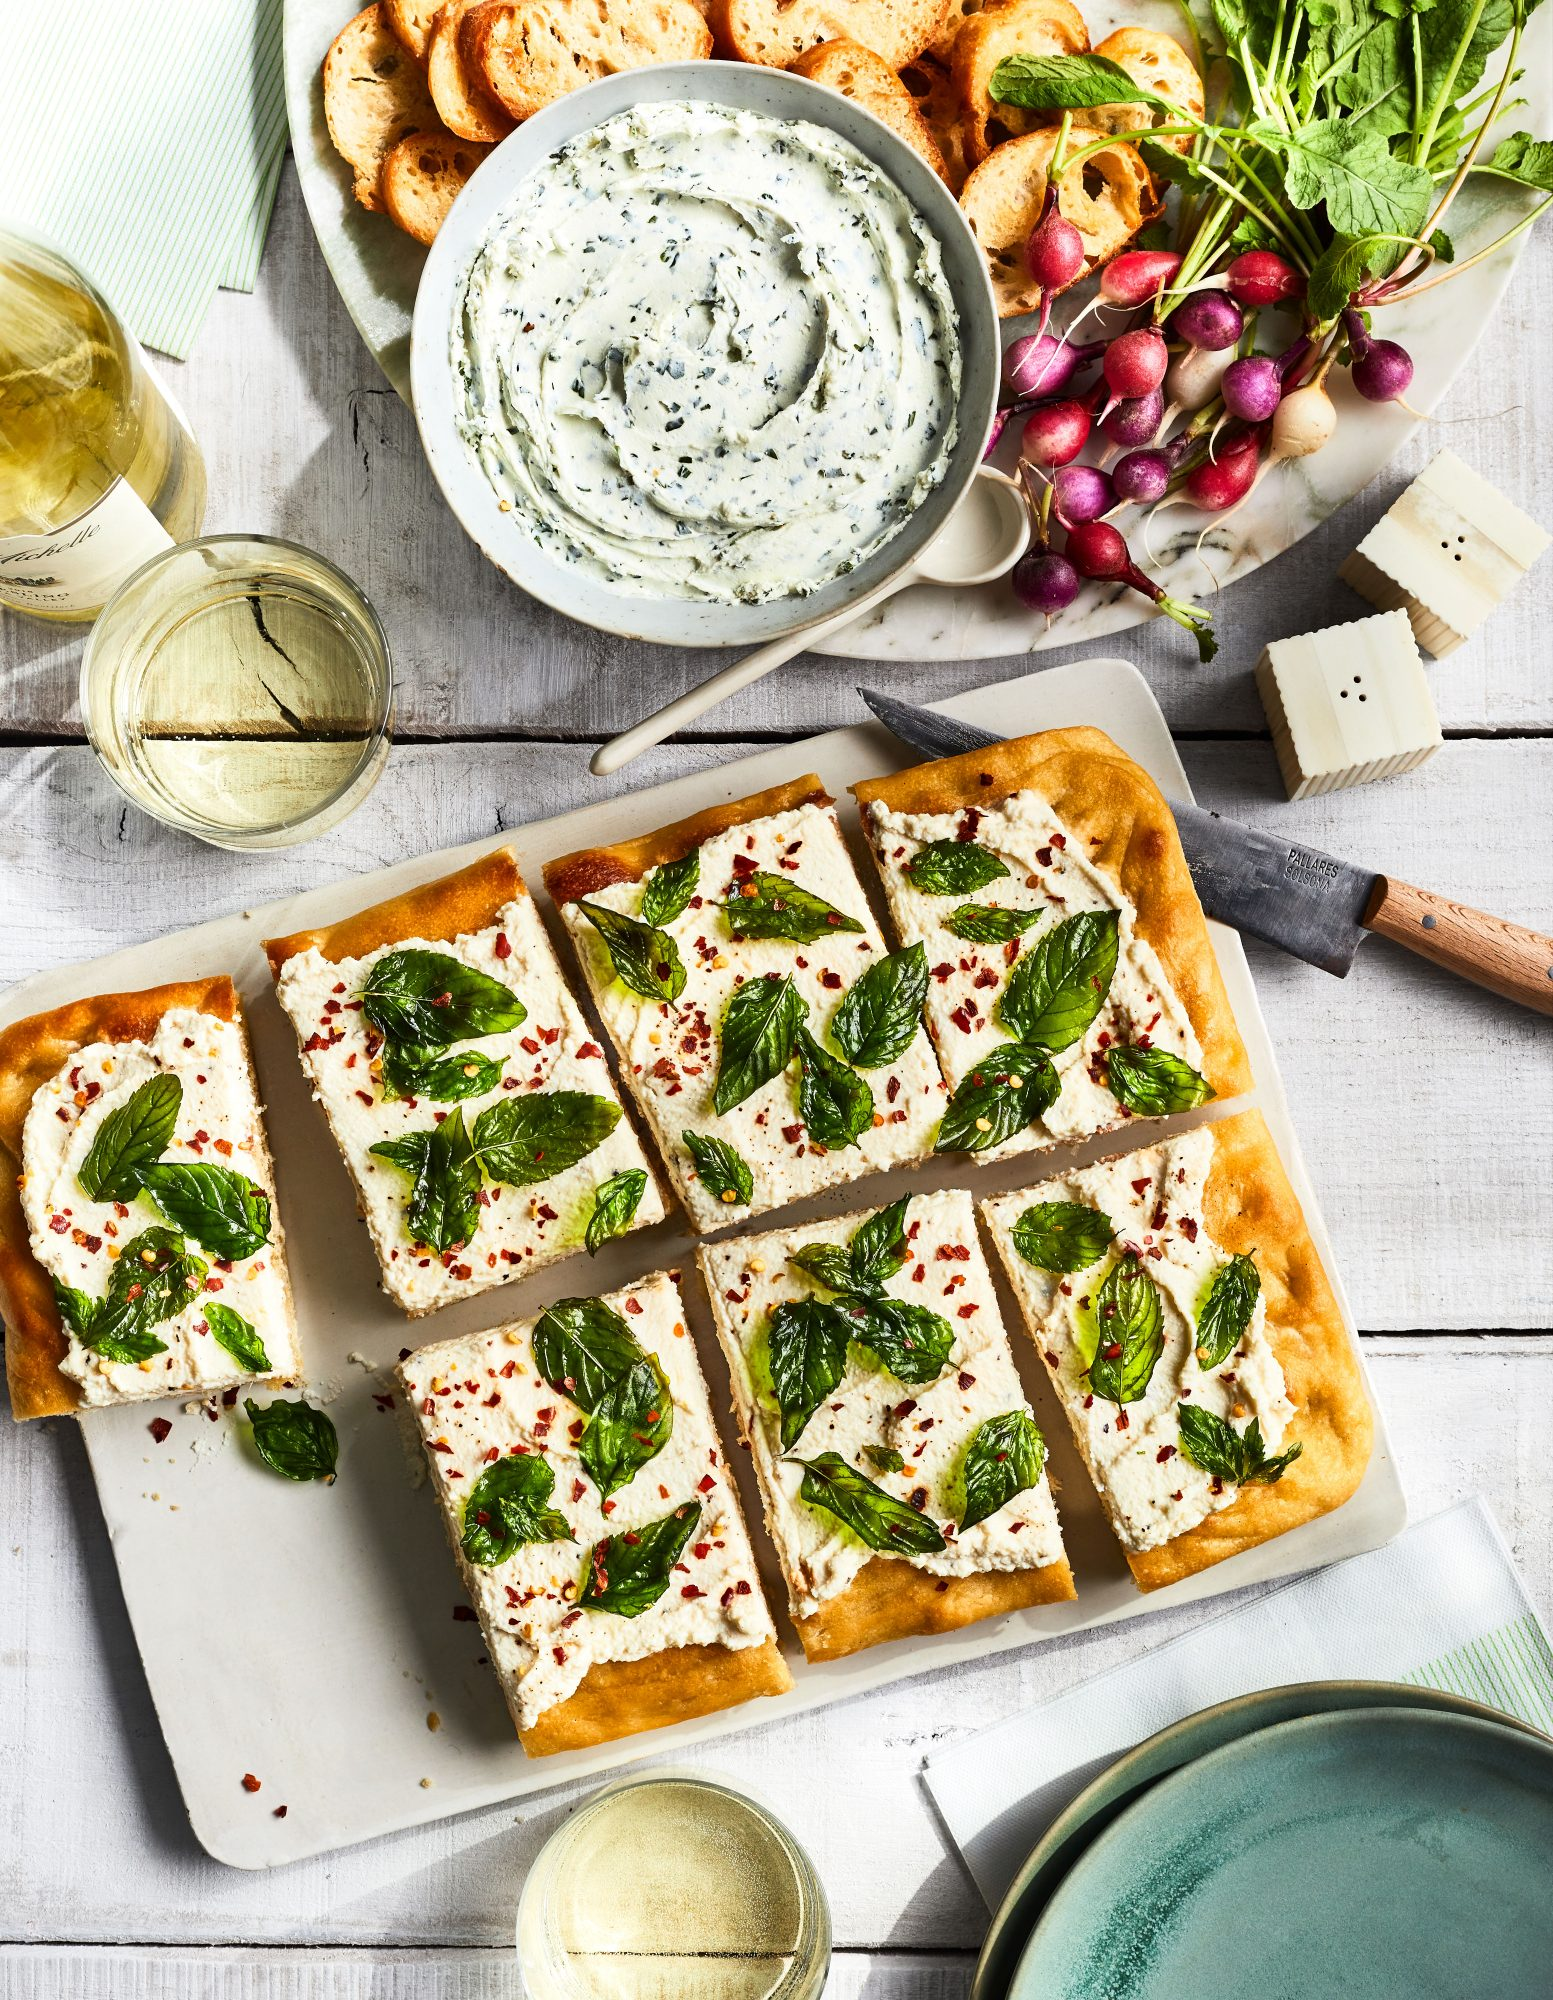 Focaccia with Ricotta and Crispy Herbs